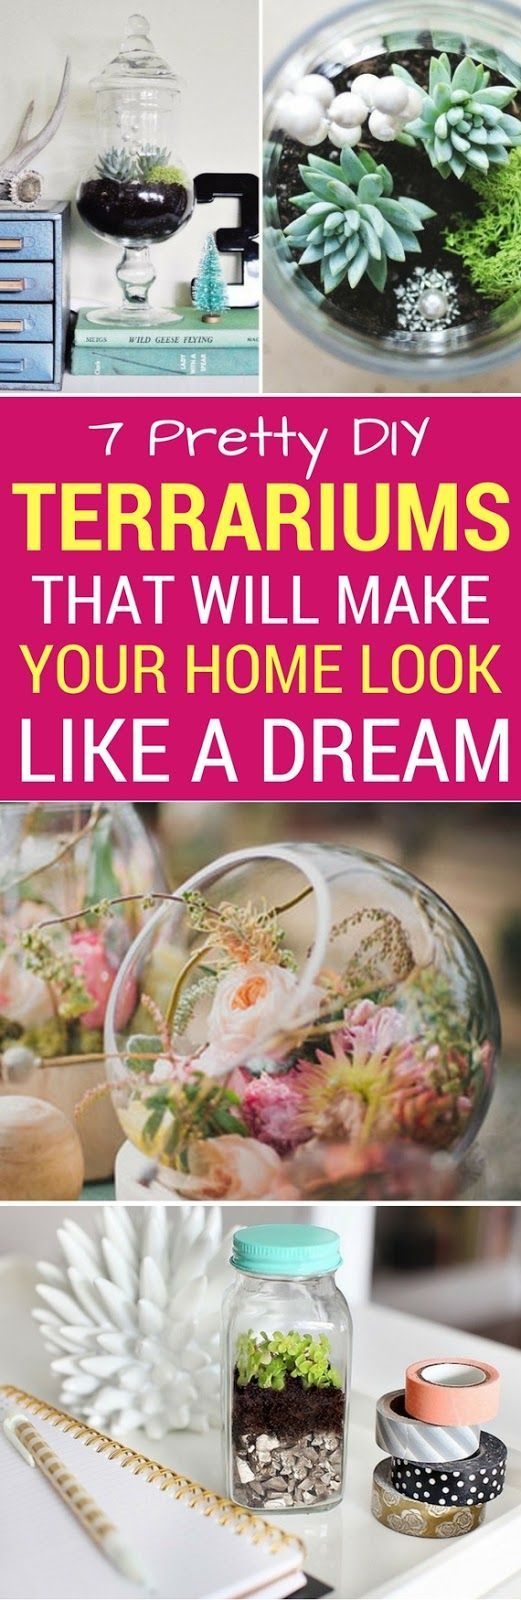 7 Most Pretty DIY Terrariums To Make Your Home Look Like A Dream - Learn how to make these easy yet gorgeous diy terrariums for your home decor. Also includes a diy project like how to make an eternal terrarium. SO COOL!